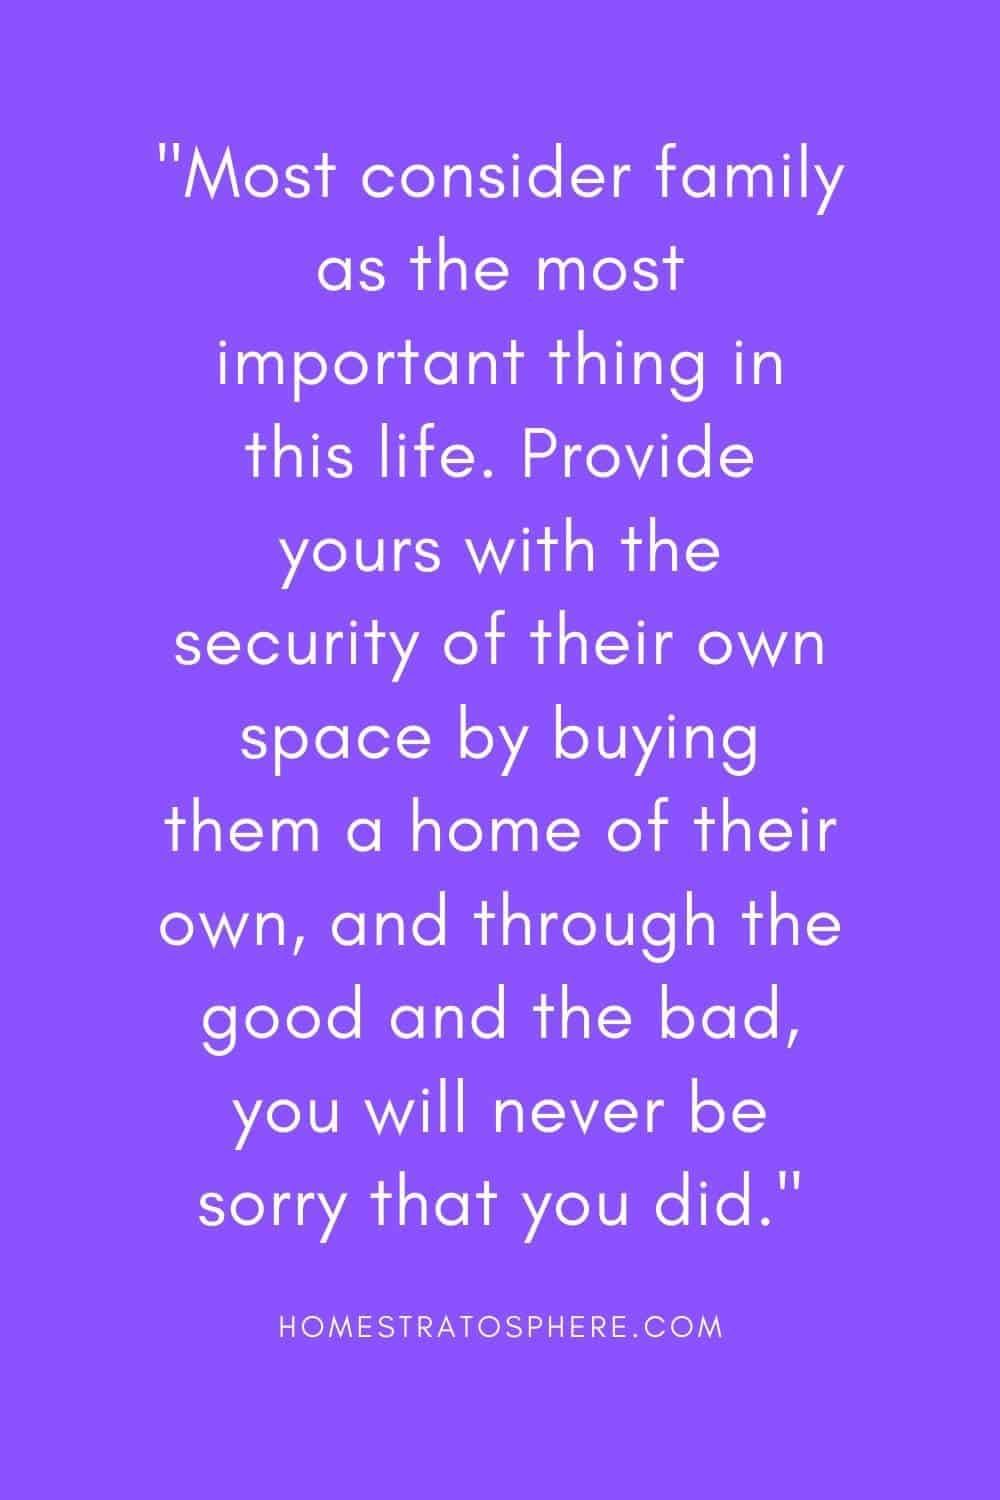 """Most consider family as the most important thing in this life. Provide yours with the security of their own space by buying them a home of their own, and through the good and the bad, you will never be sorry that you did."""